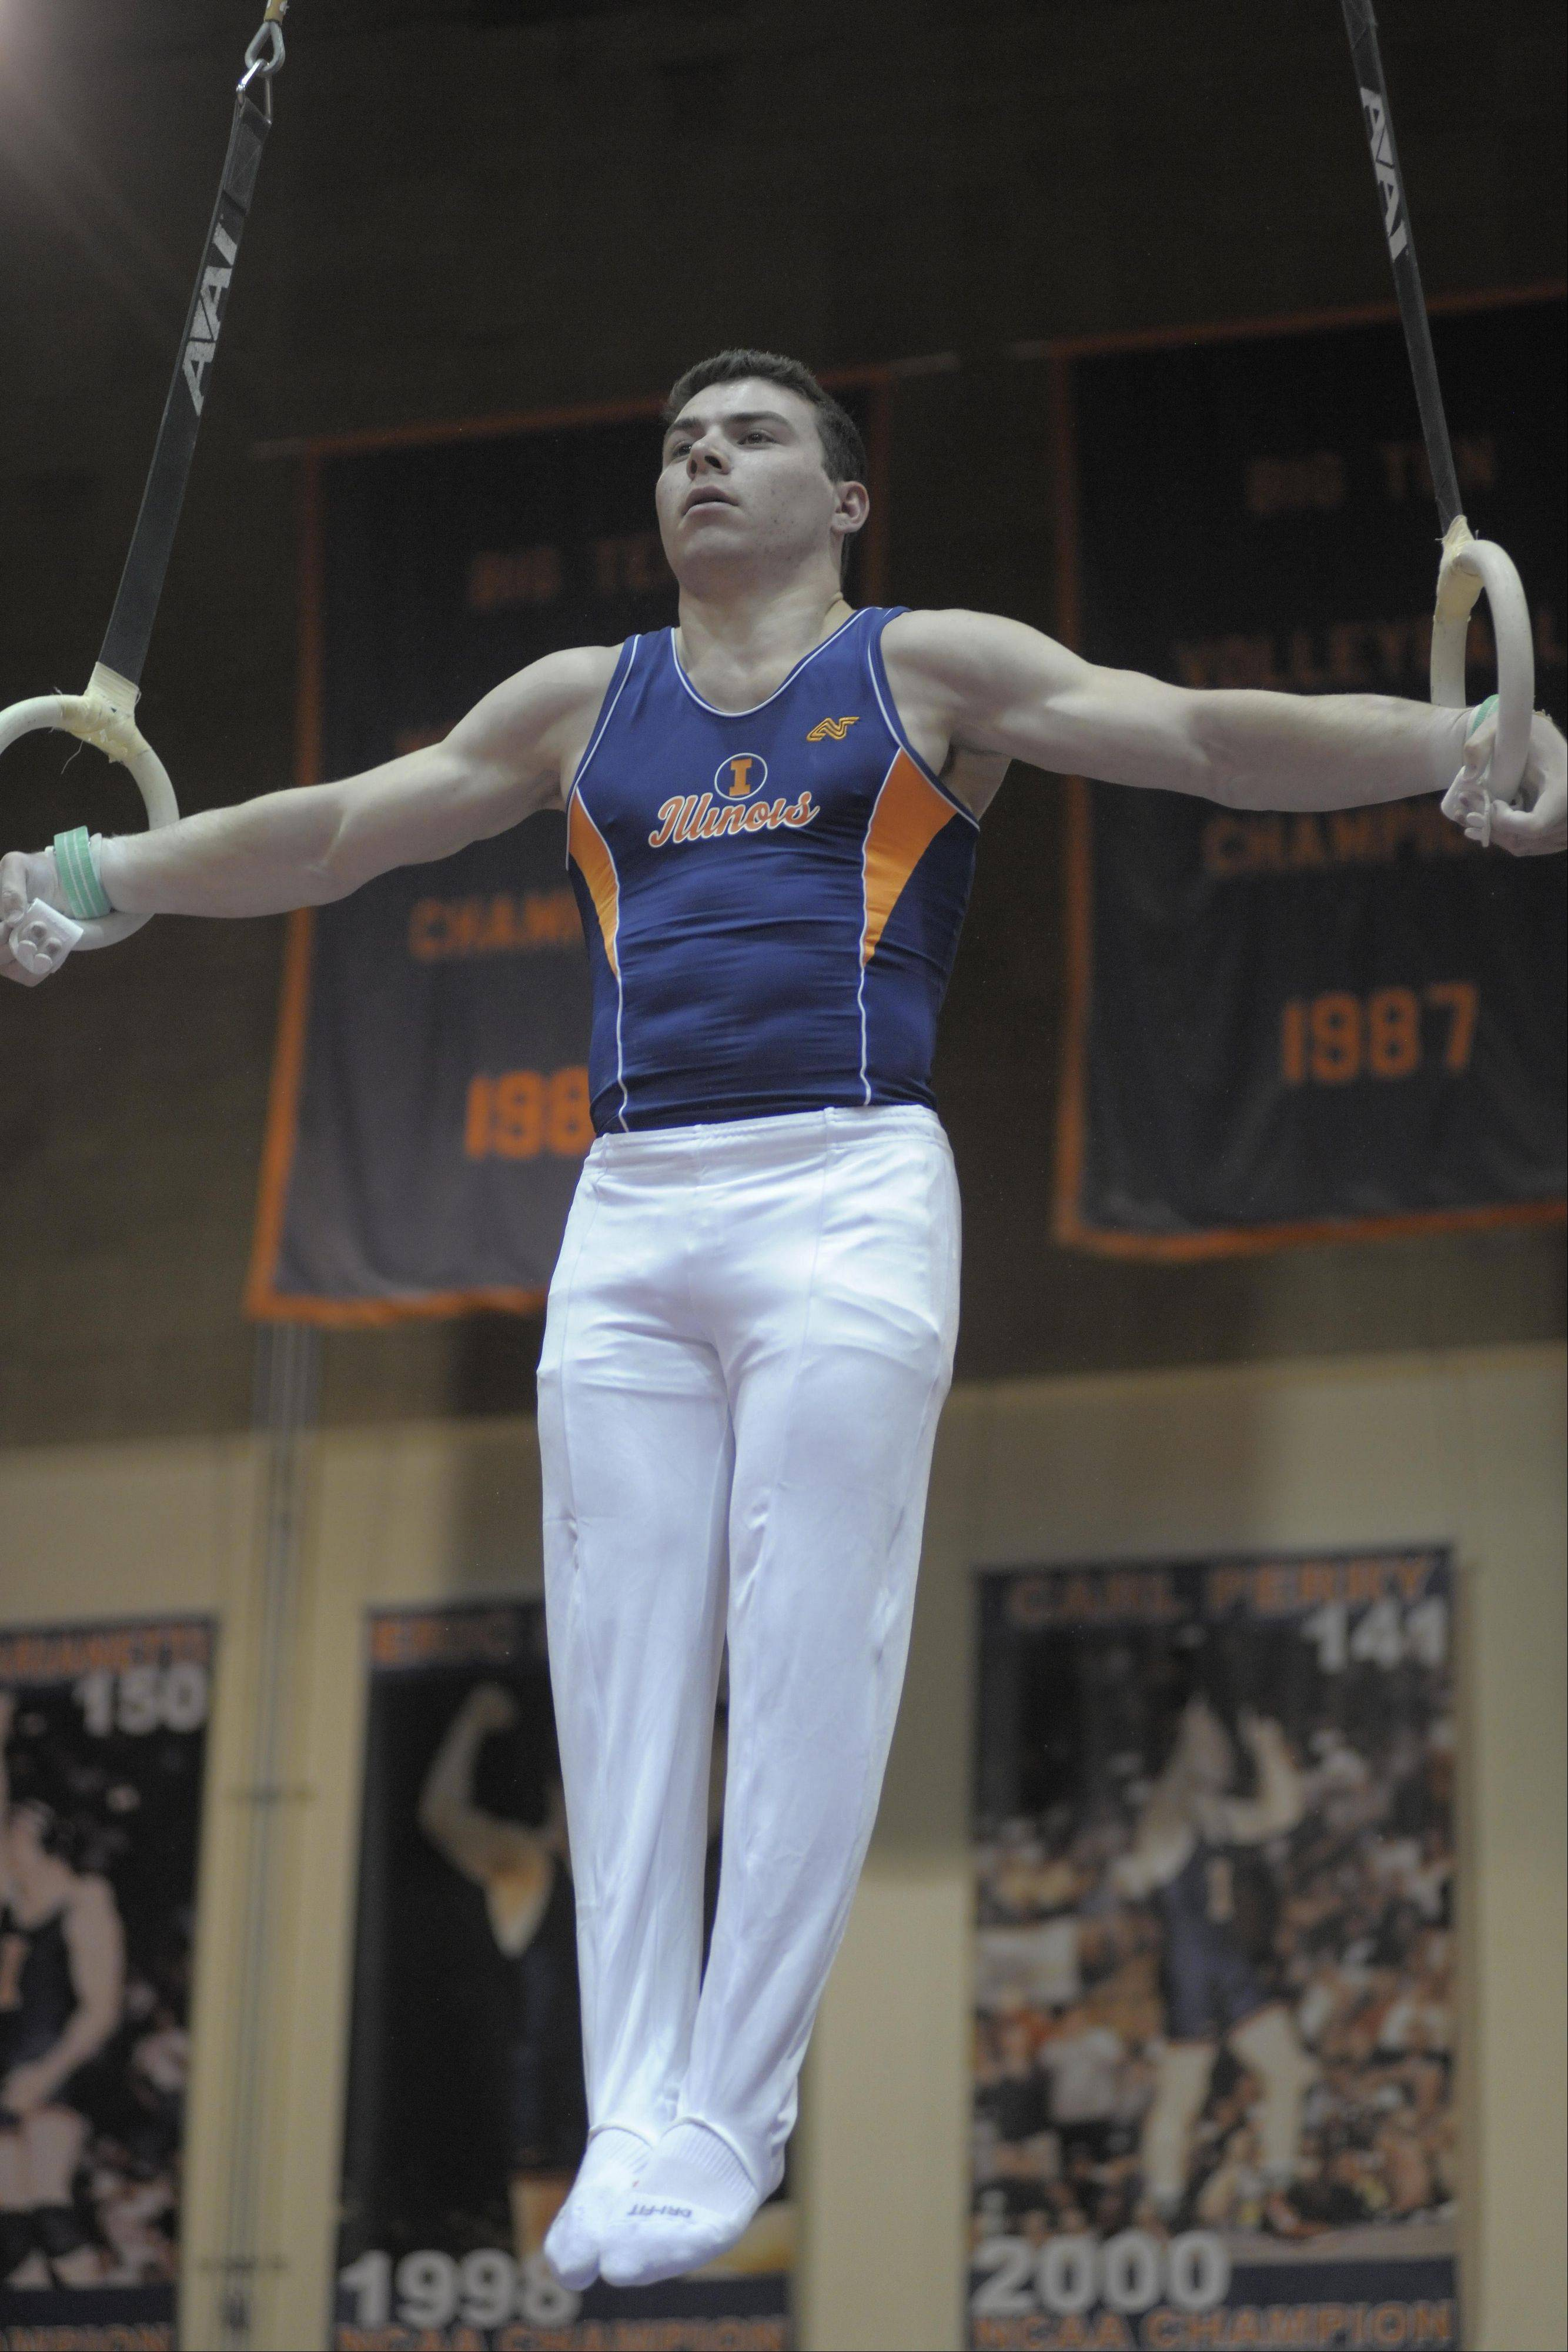 Buffalo Grove native Mike Wilner competes on the still rings for the University of Illinois men's gymnastics team. He's ranked No. 1 in the event nationally and will travel to Israel this summer to compete in the 19th Maccabiah Games.